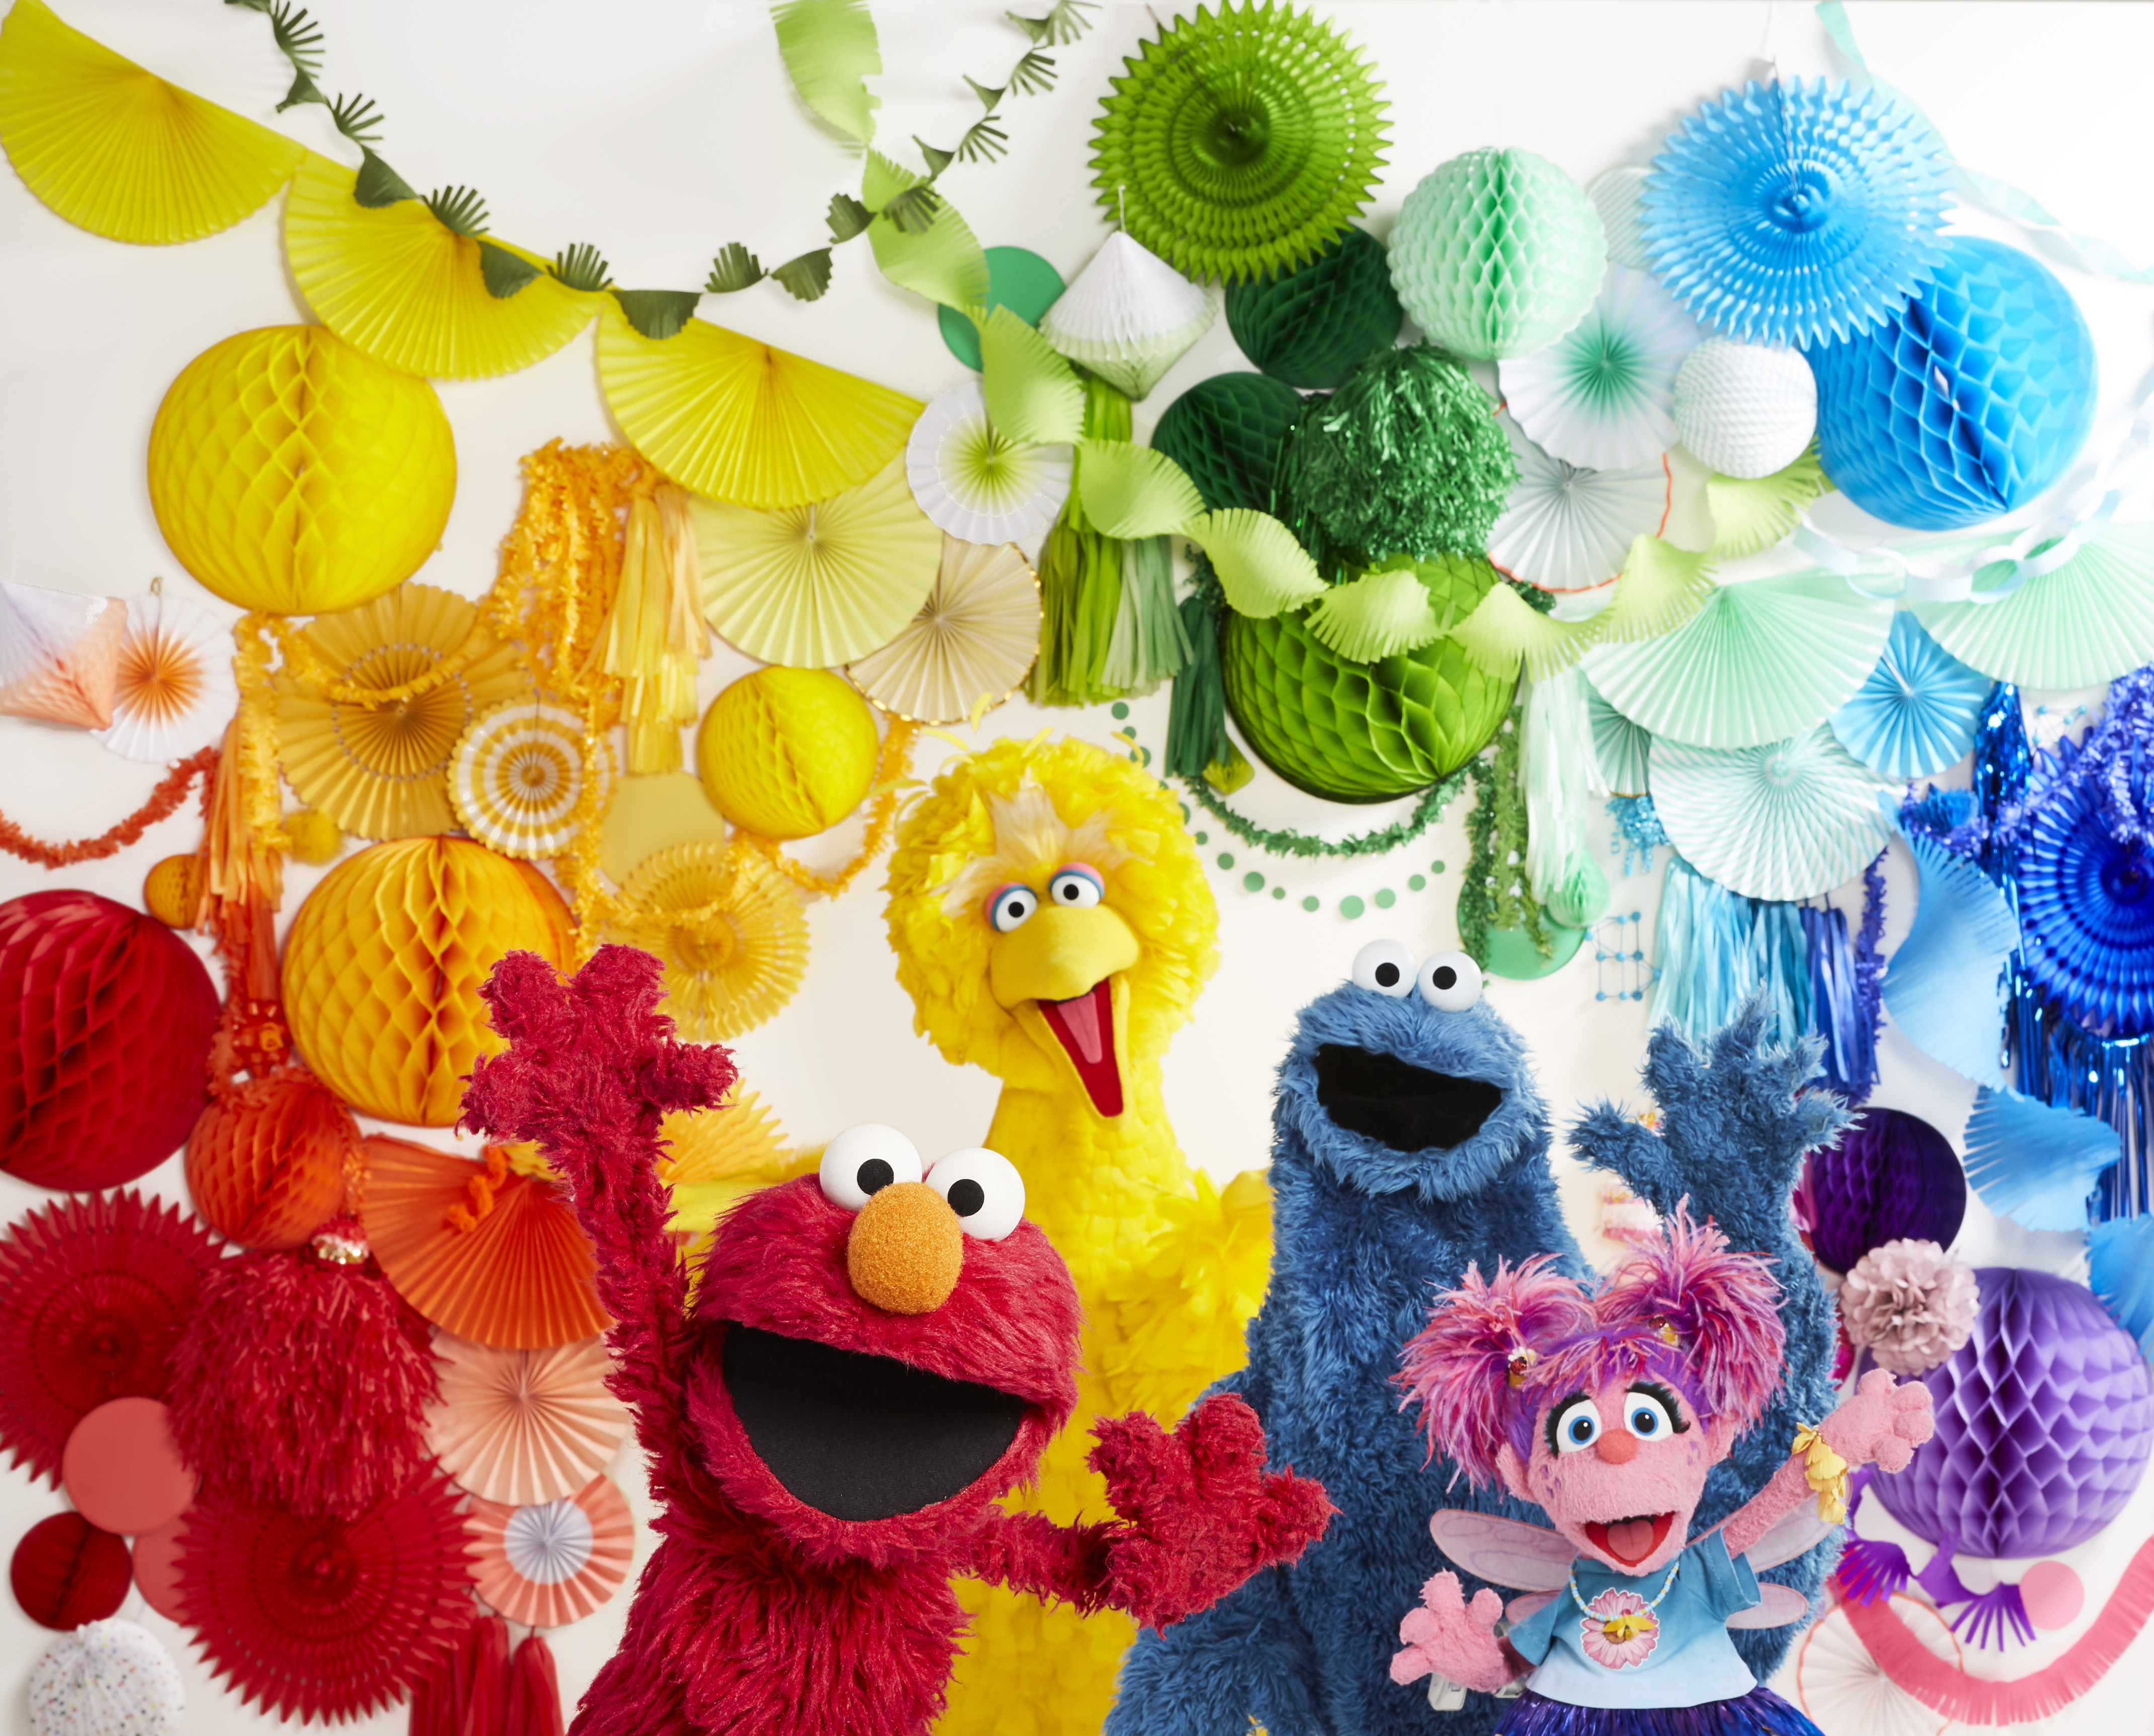 Sesame Street Celebrates 50 Years and Counting | Sesame Workshop